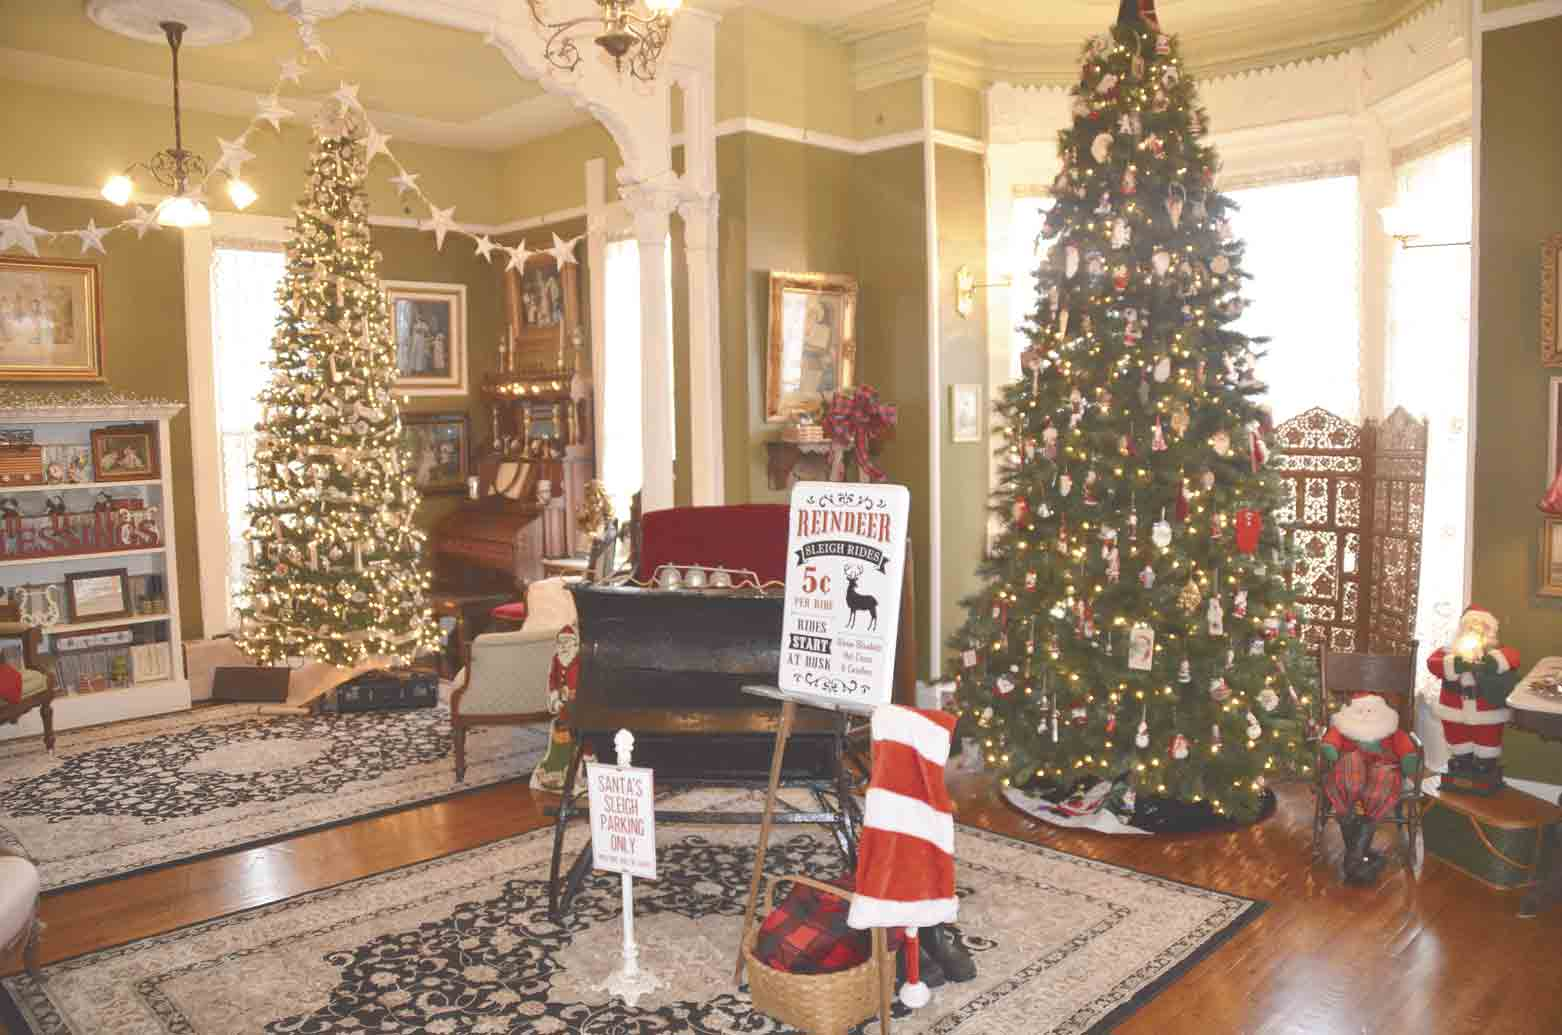 The parlor in the Ziegler Mansion looks like something that Ebenezer Scrooge could have came home to. It is decorated in the Victorian style and even has a full-size open sleigh in the room.Monroes inviting public to experience a Victorian Holiday first handBy Jack Swanson...